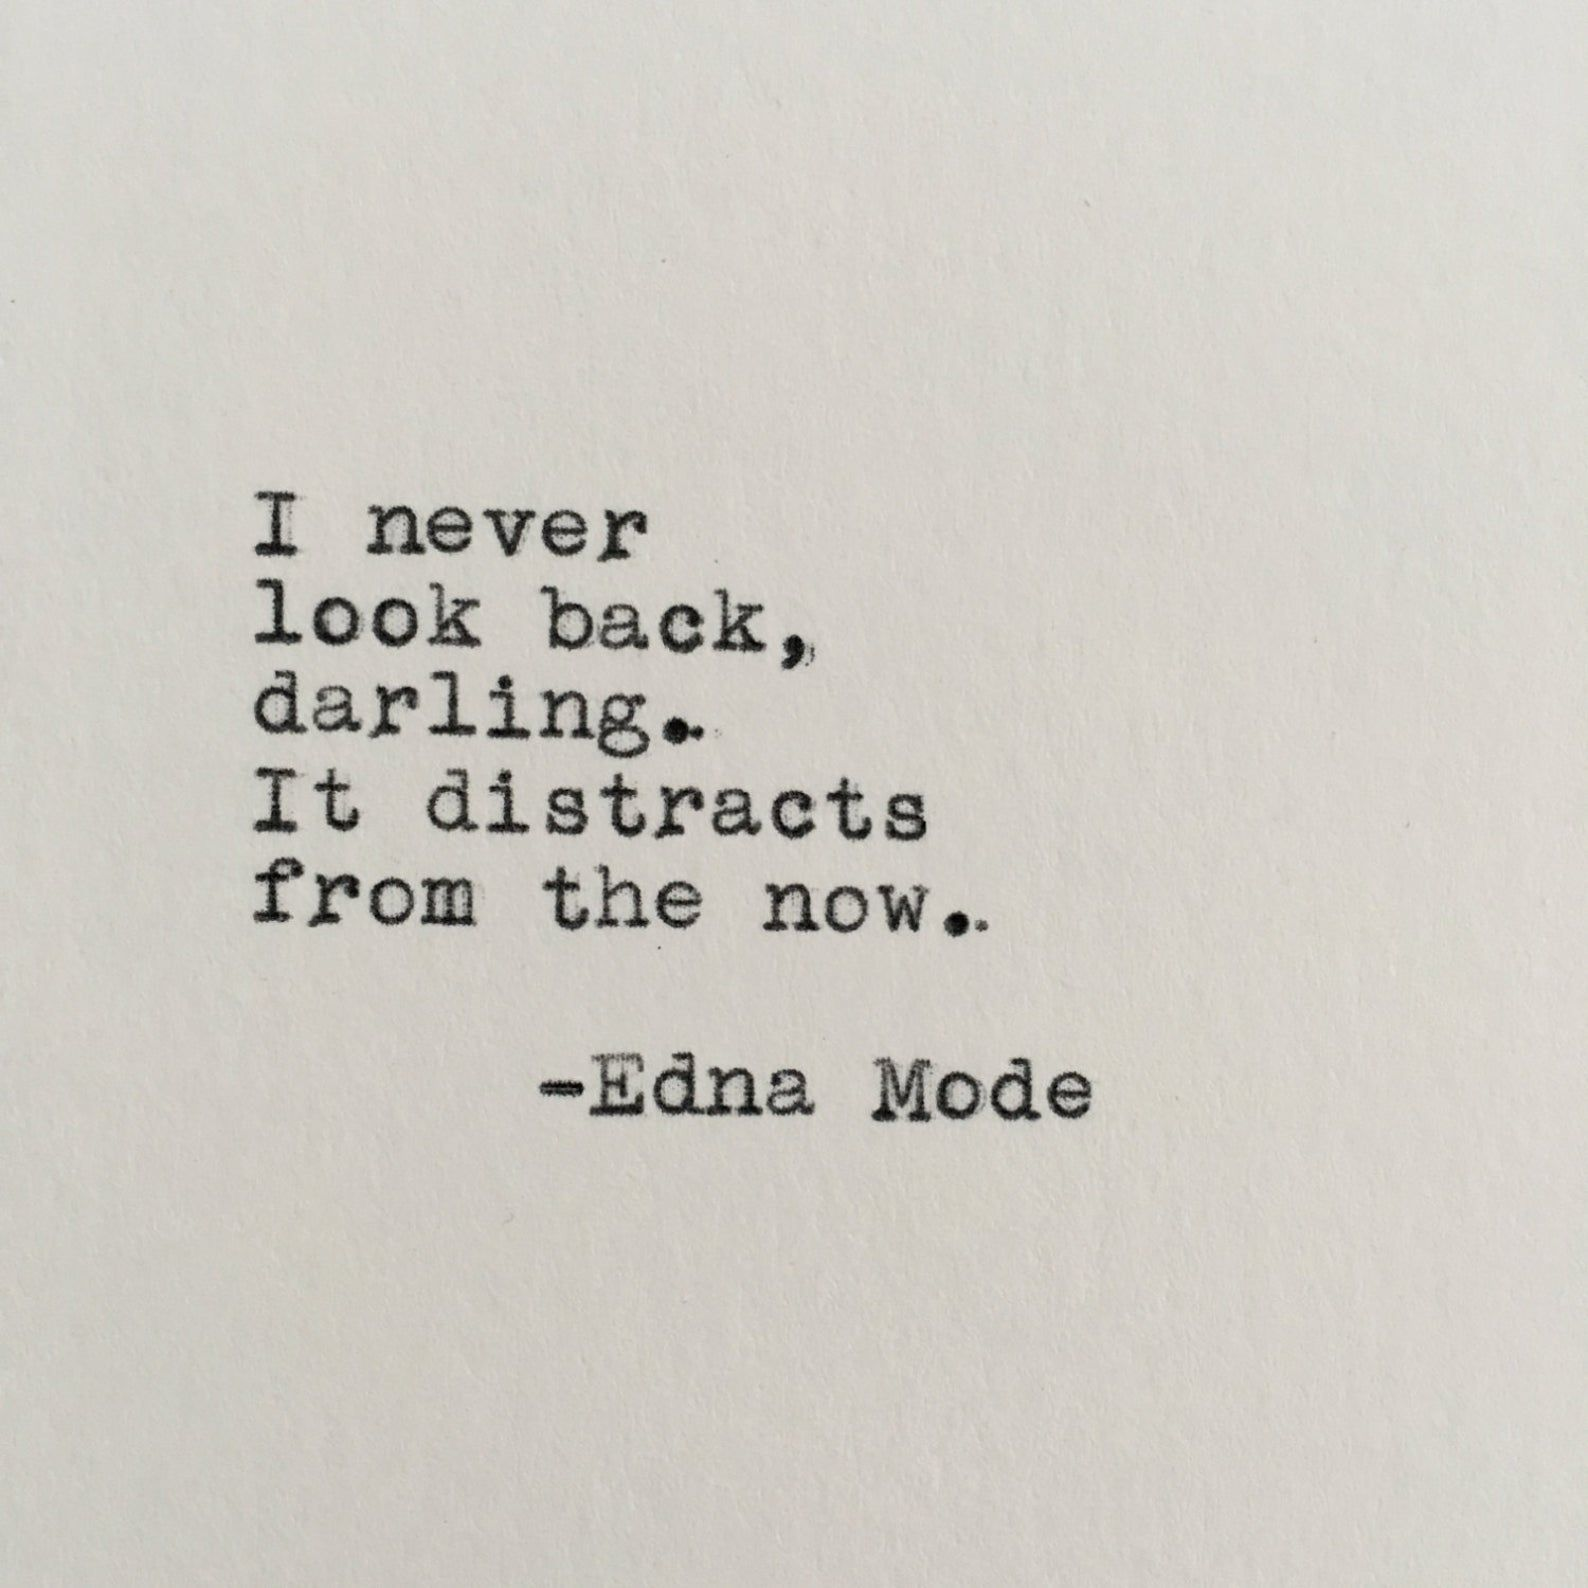 Pixar's The Incredibles Quote (Edna Mode) Typed on Typewriter